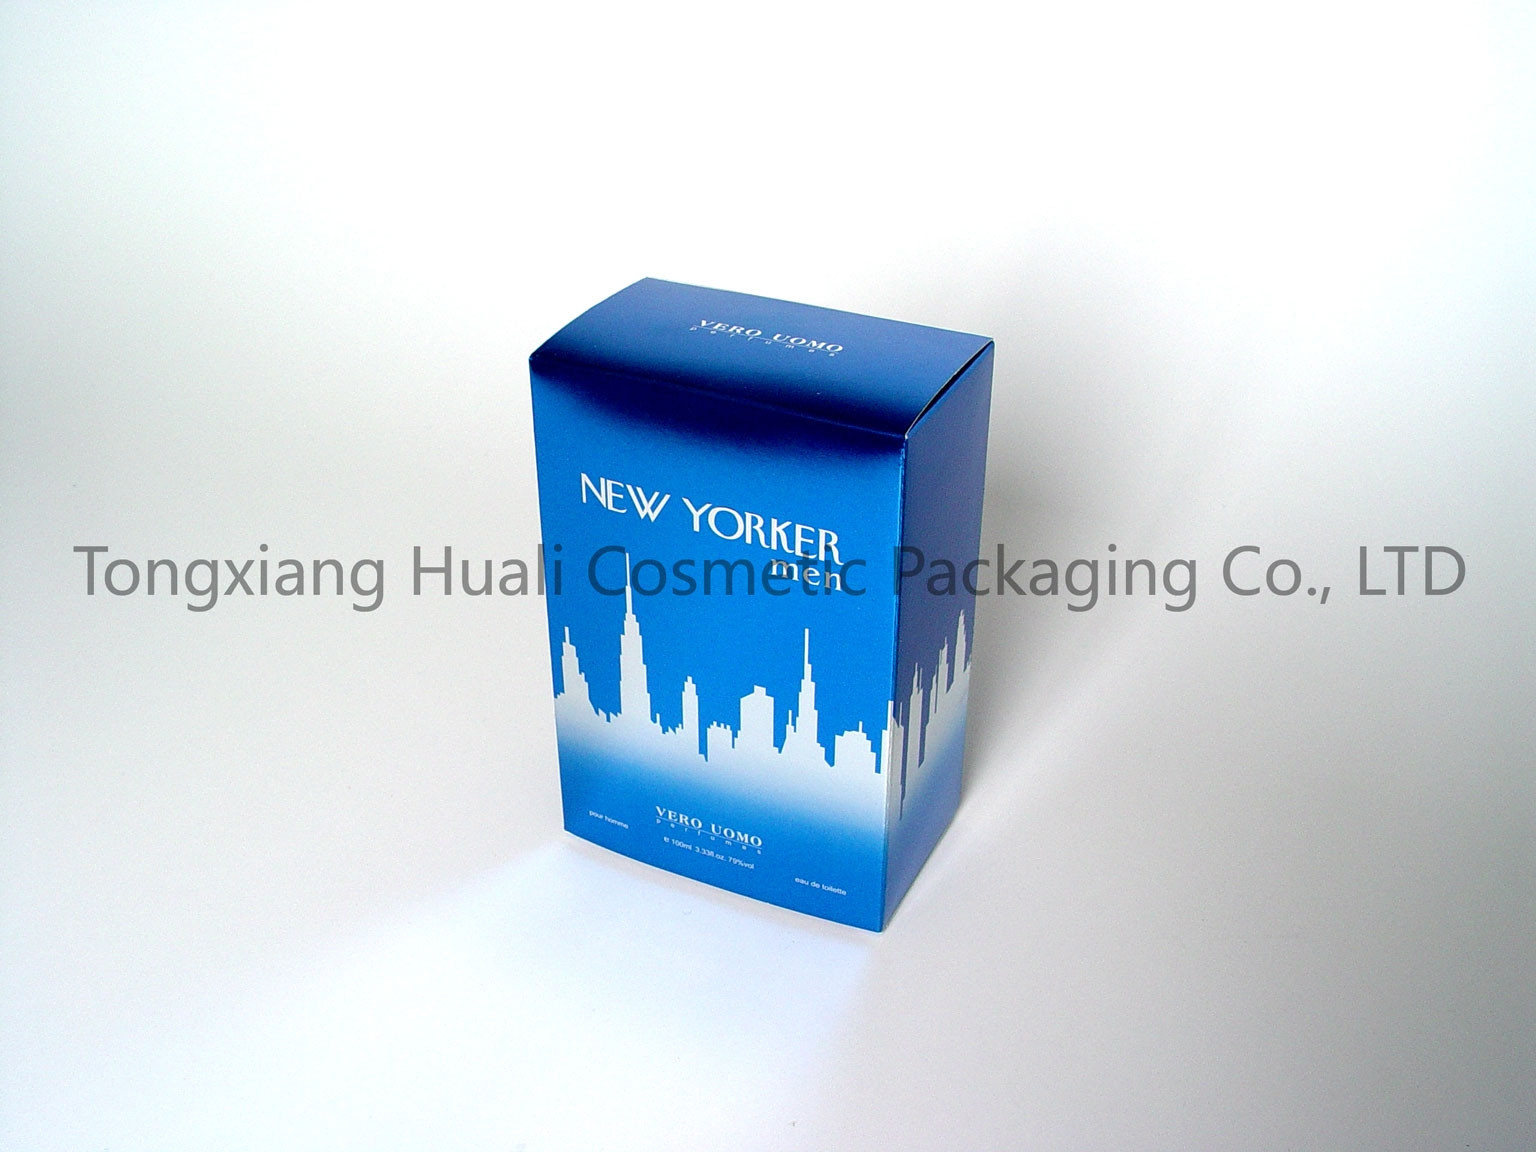 Customized Paper Packaging (Model No.Box p-18),design paper gift box packaging